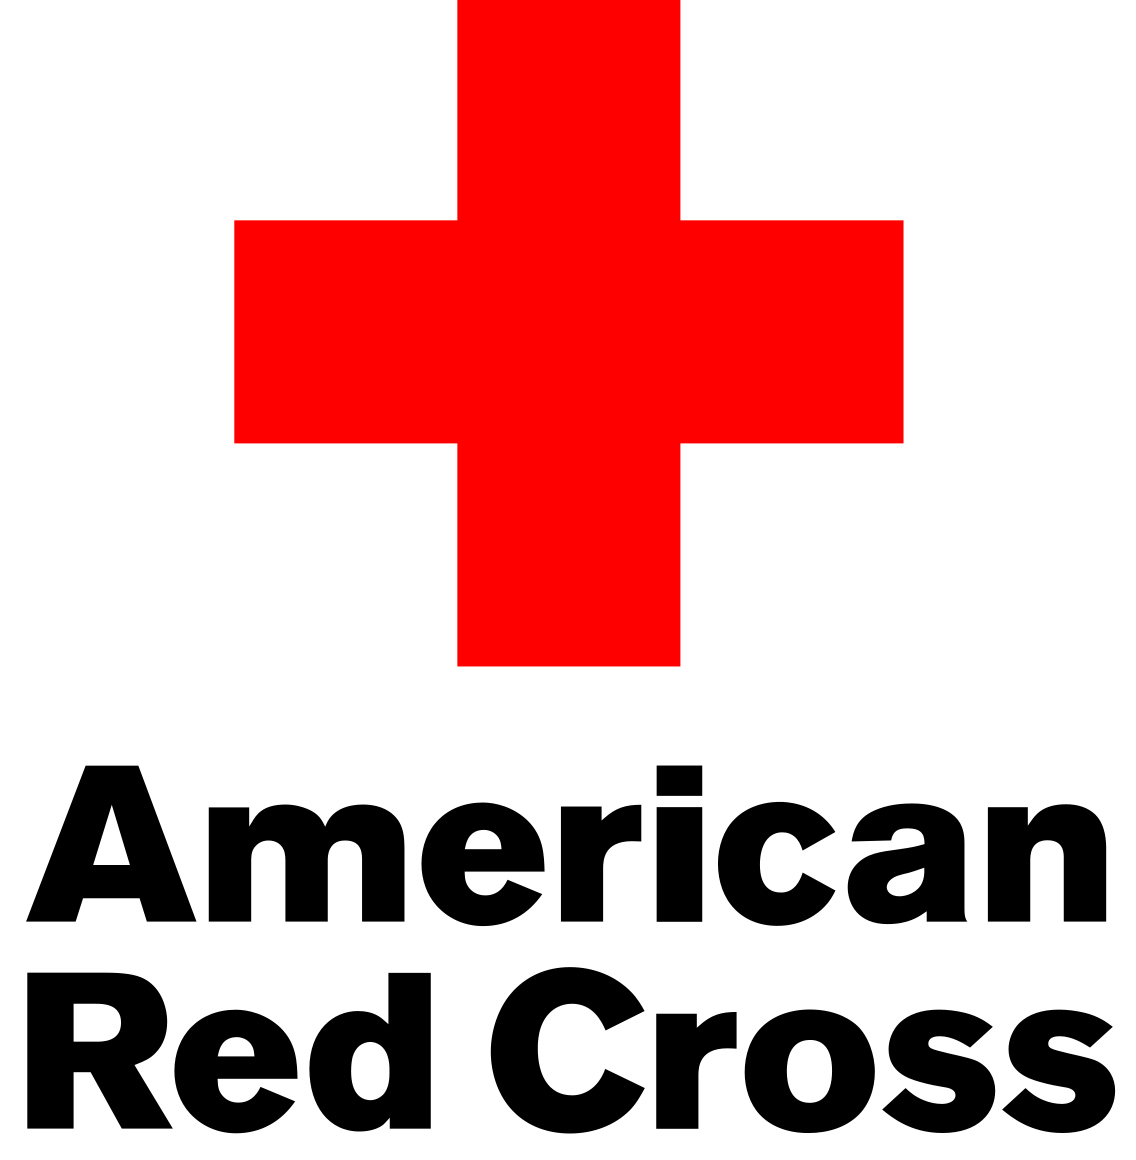 American Red Cross Logo Png - Meaning And History American Red Cross Logo, Transparent background PNG HD thumbnail